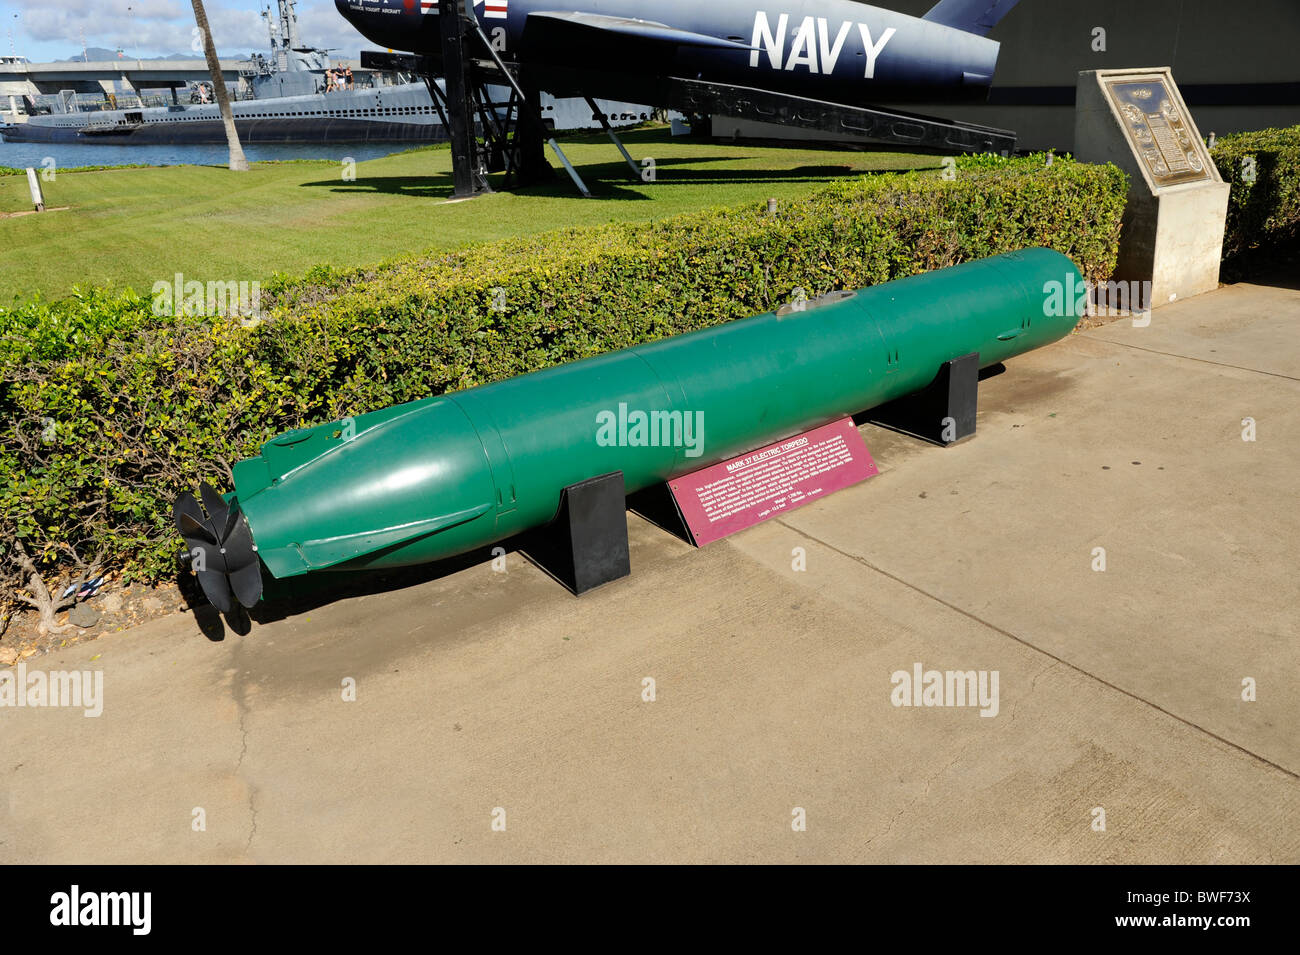 Mark 37 Electric Torpedo on display at Pearl Harbor Pacific ...